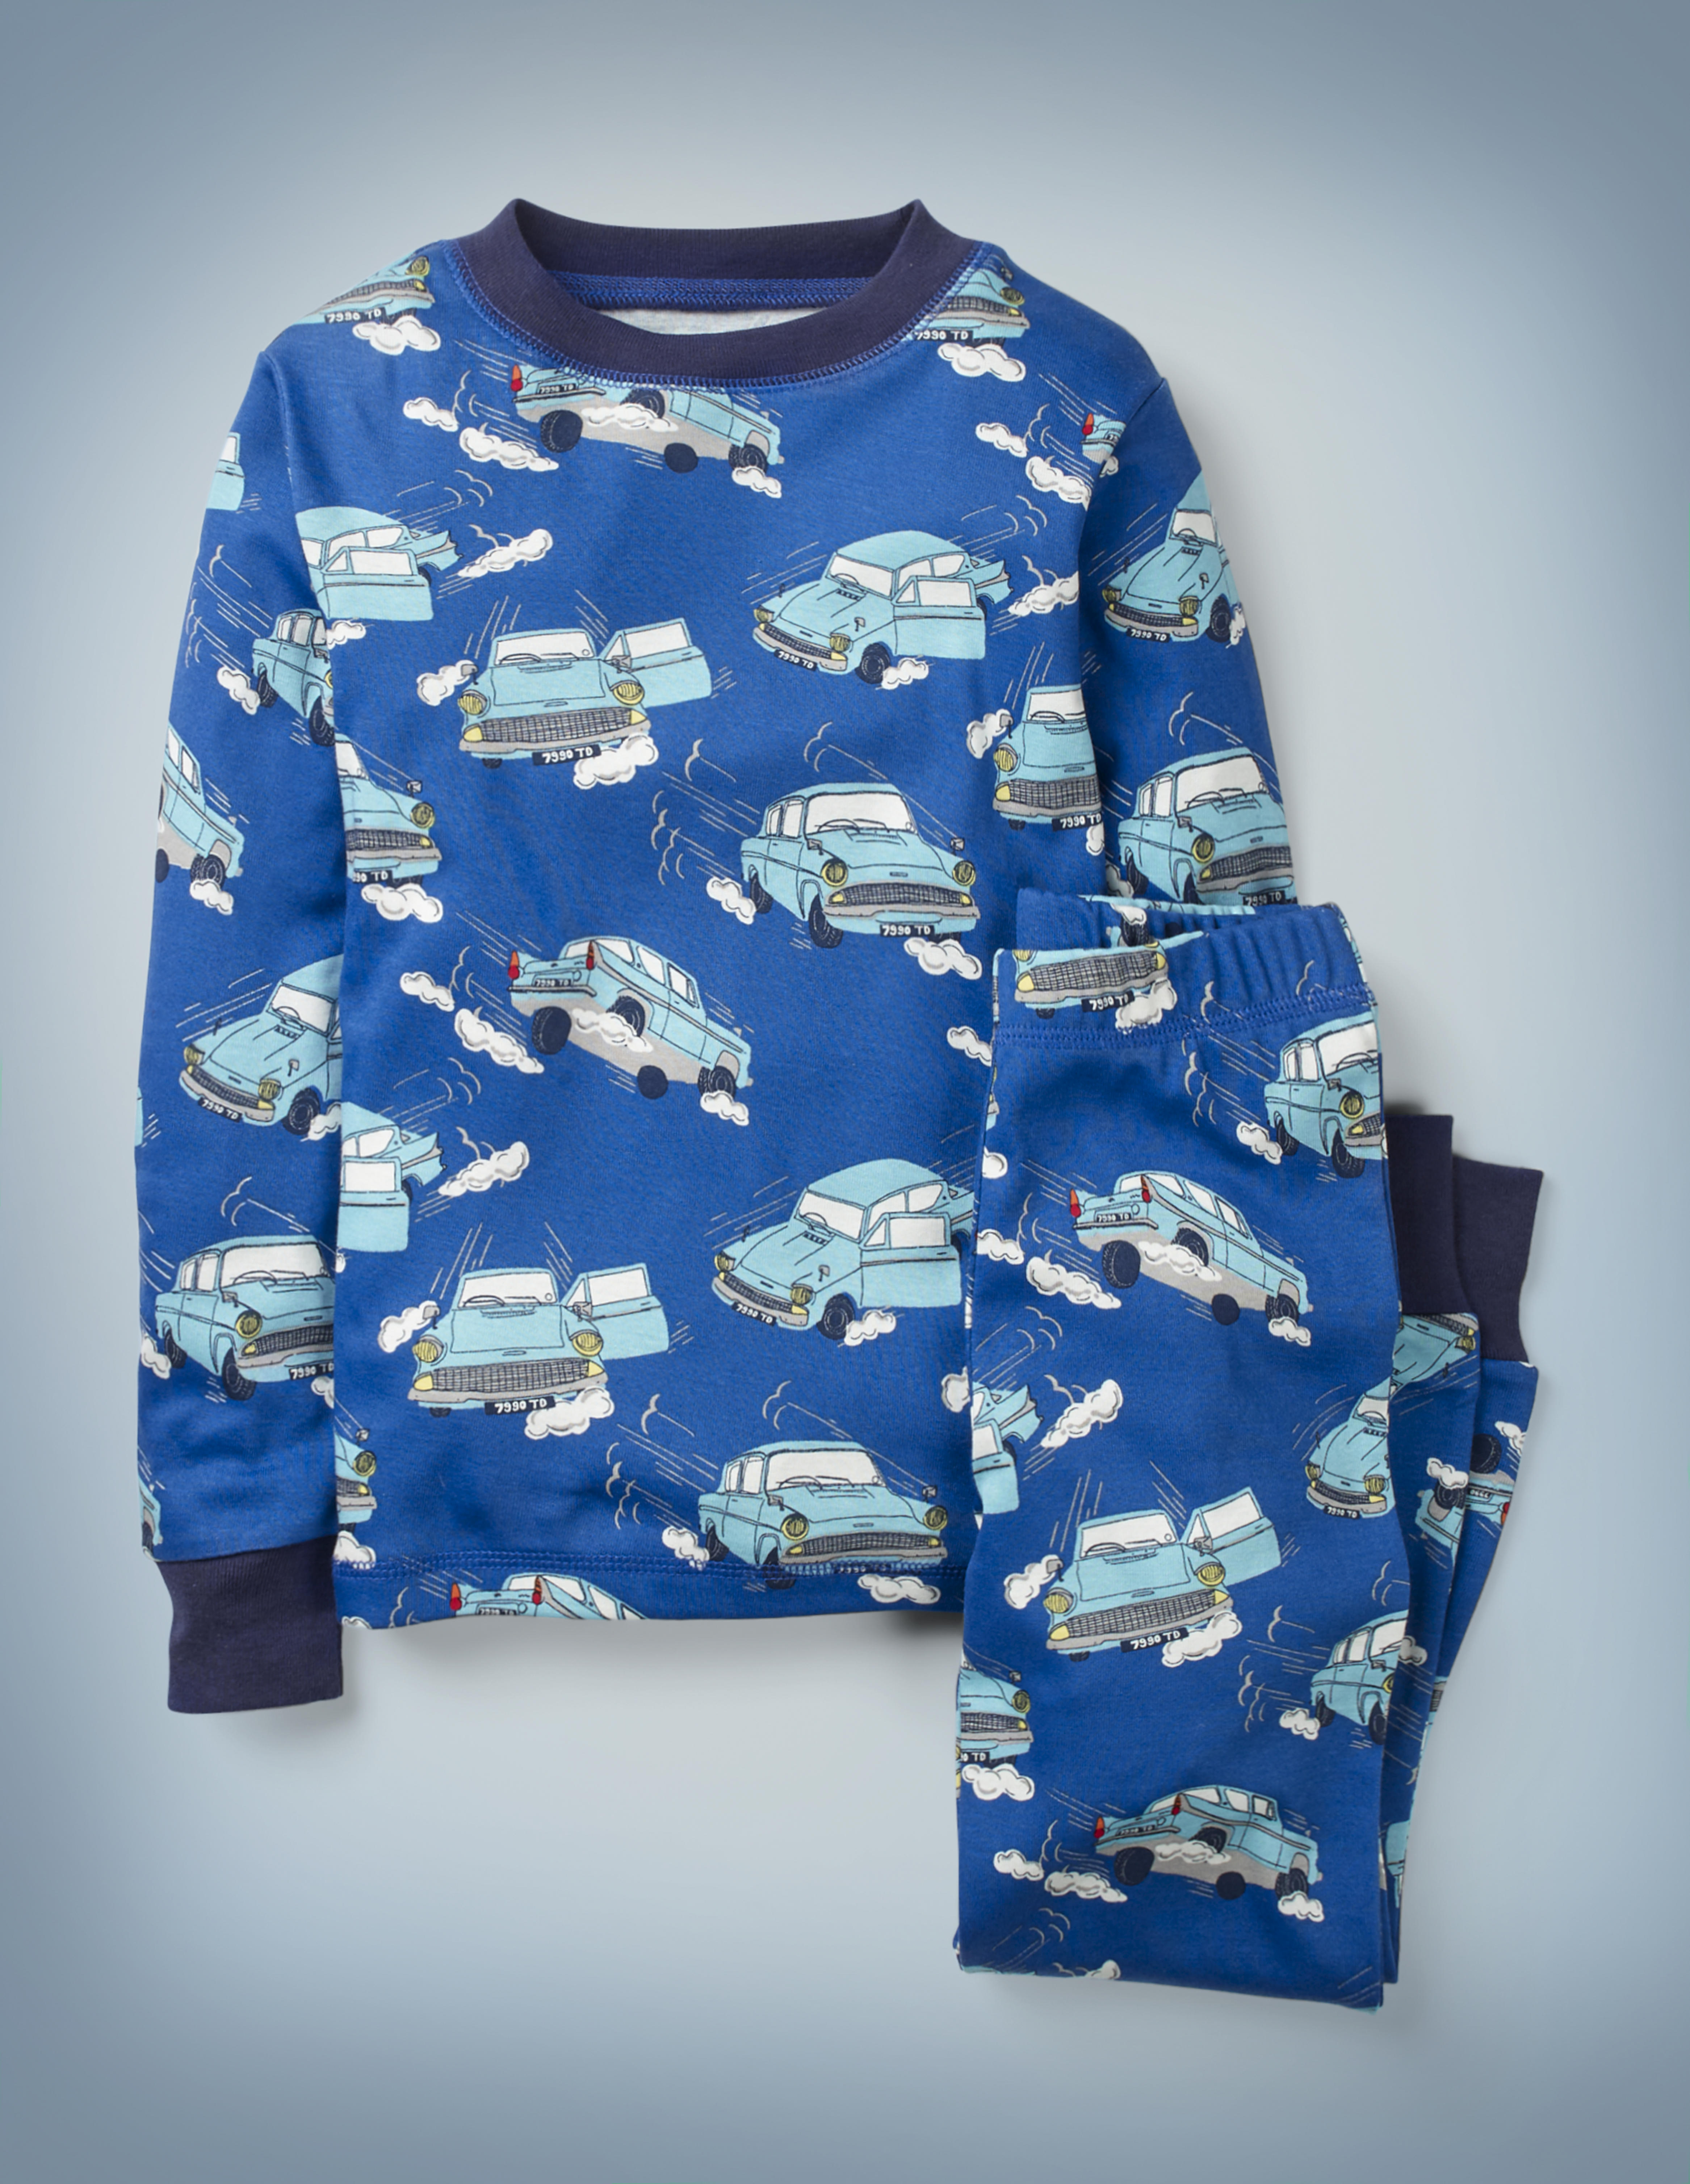 The Mini Boden Harry Potter Long John Pyjamas in blue feature all-over images of Arthur Weasley's flying Ford Anglia zooming through the sky. The top-and-bottom set retails at £24.